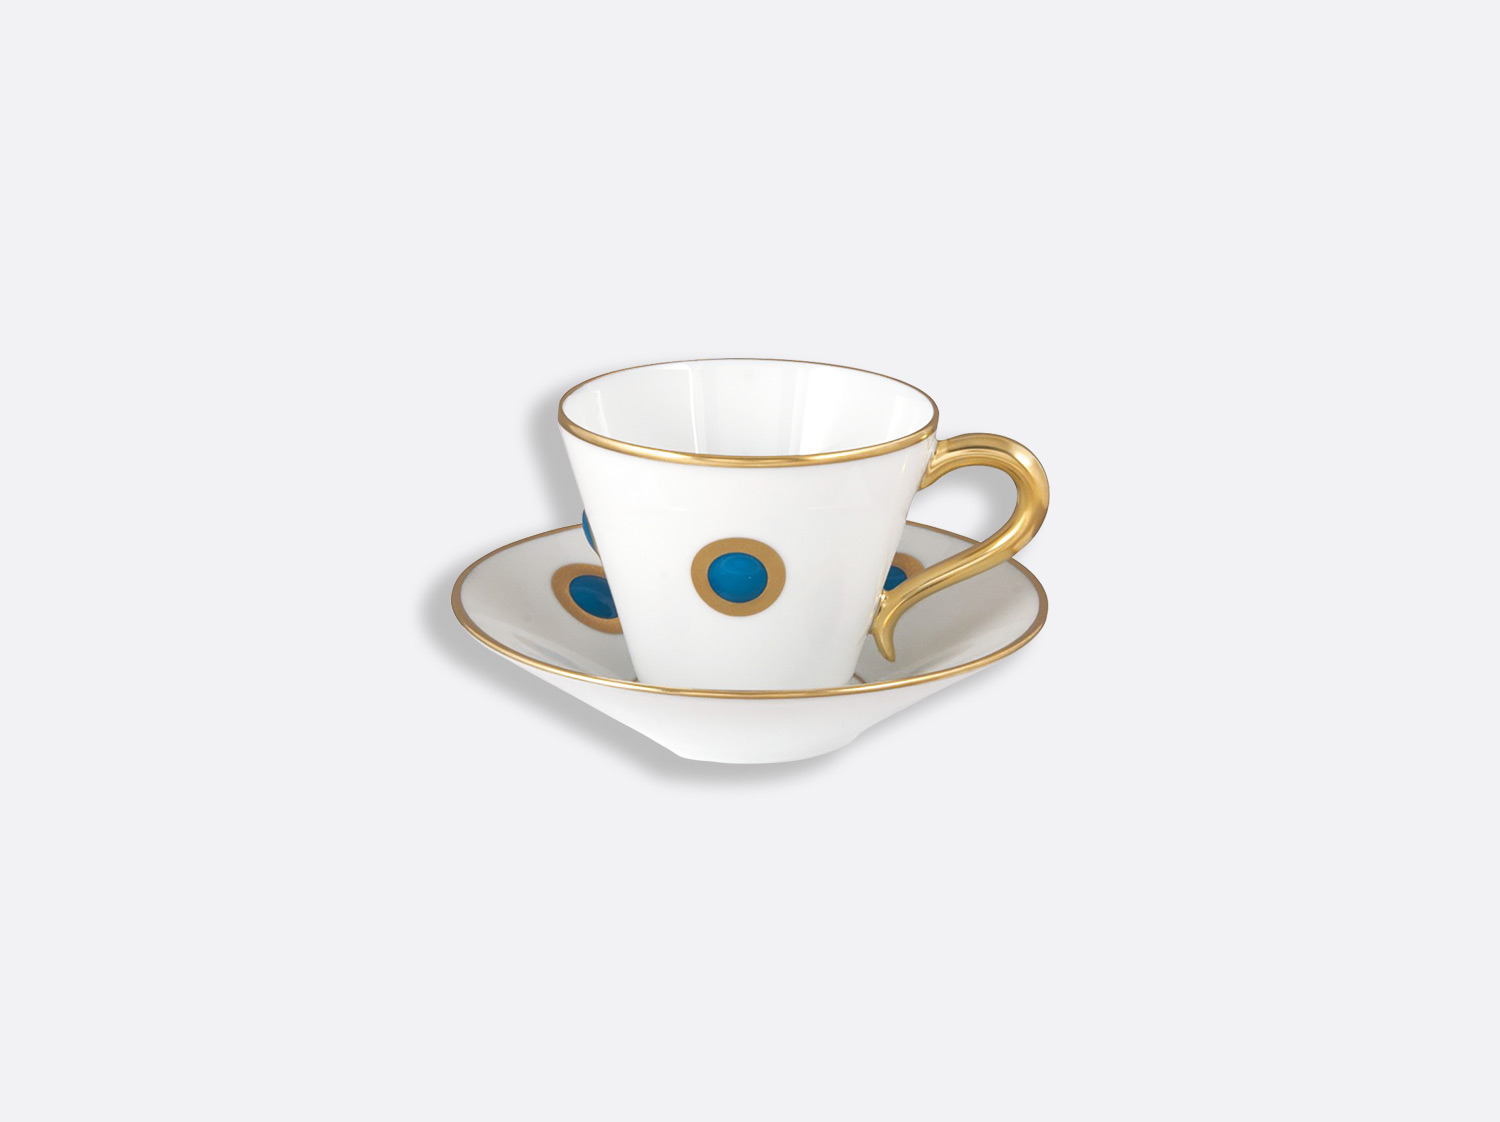 China Espresso cup and saucer 13 cl of the collection Ithaque bleu indien | Bernardaud